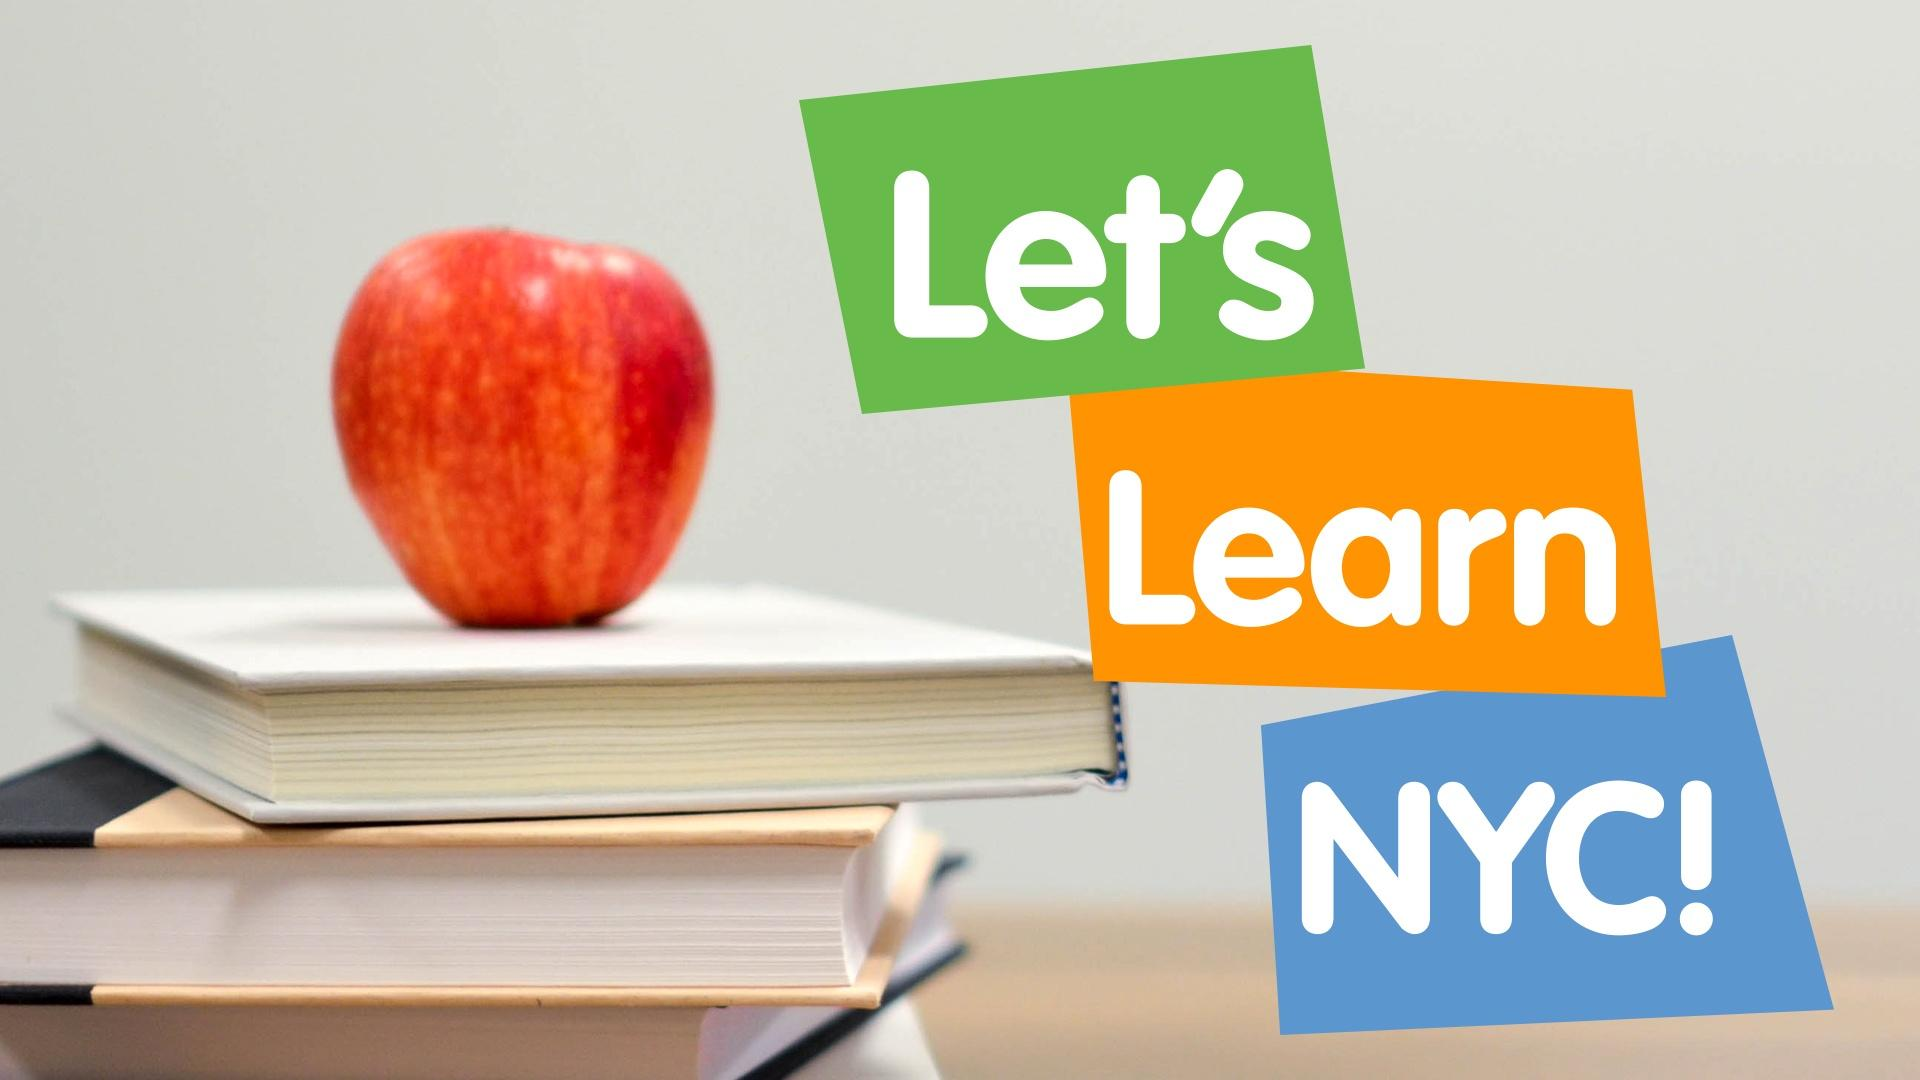 Let's Learn NYC